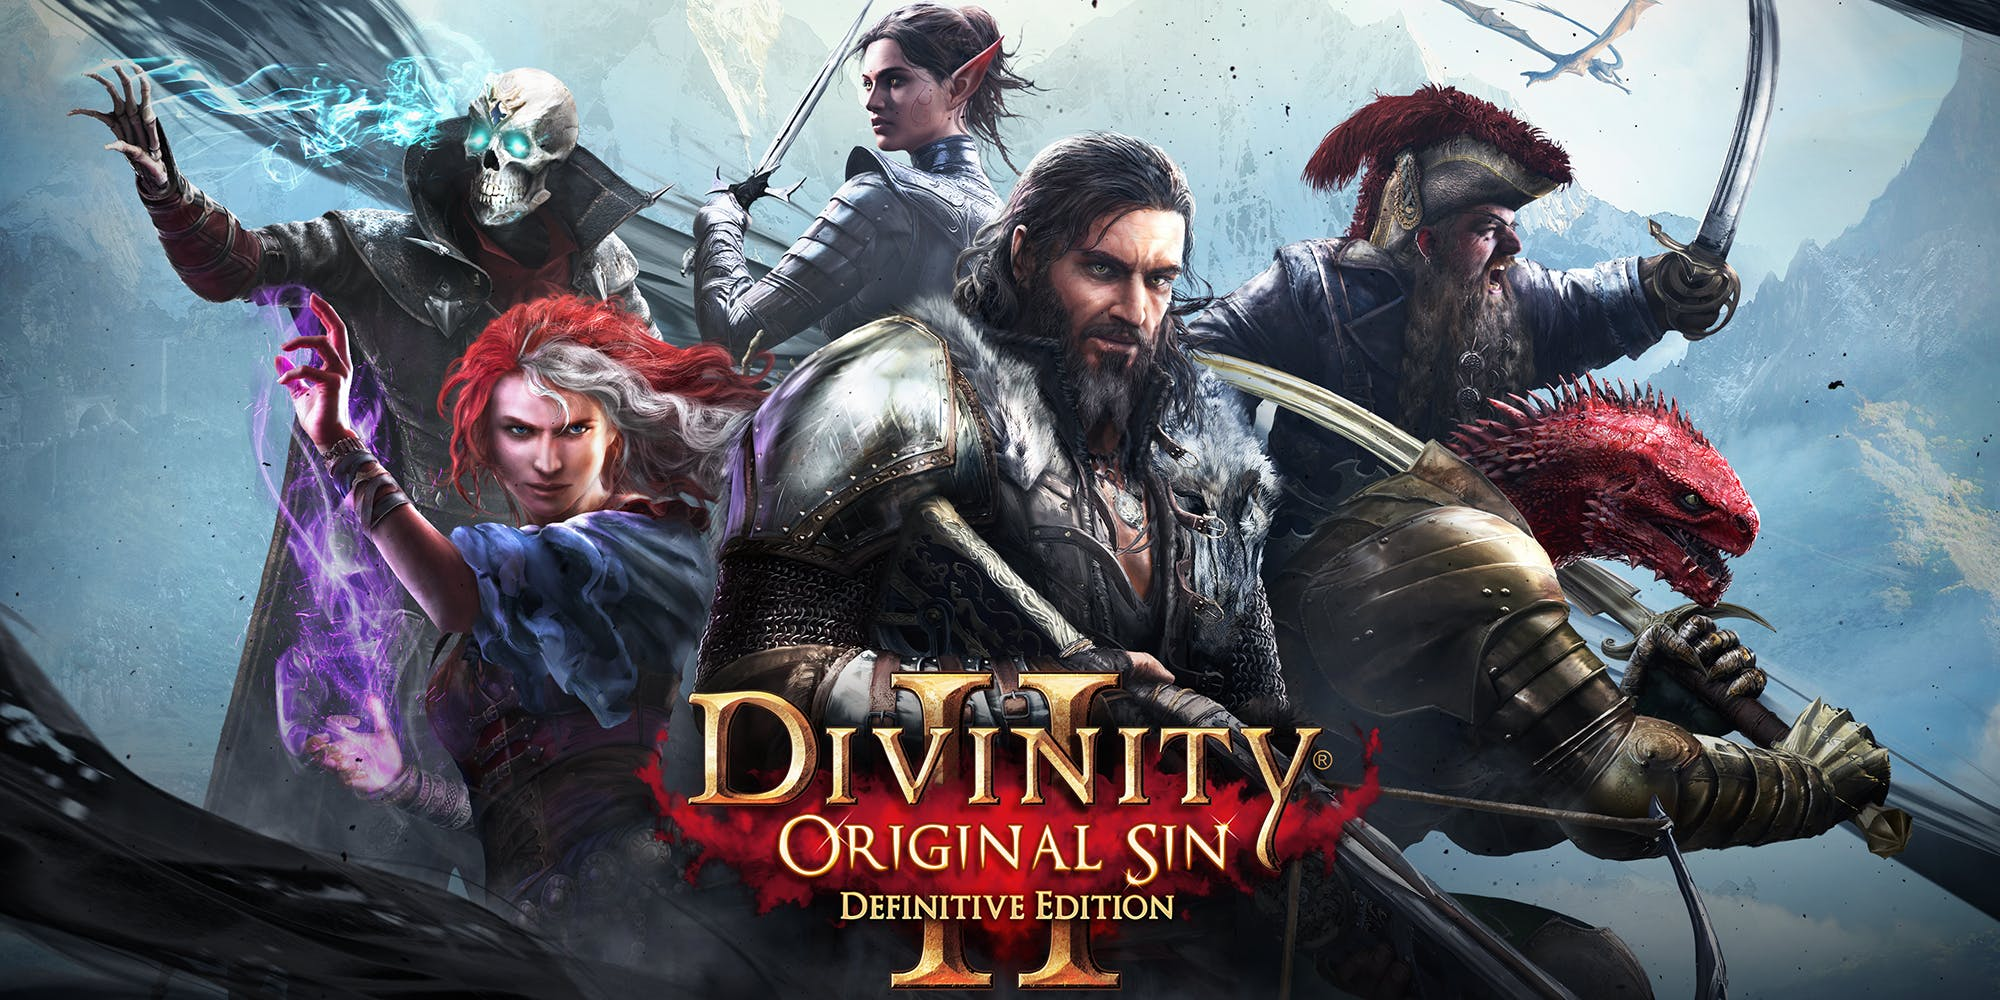 Download Divinity Original Sin 2 Definitive Edition-CODEX + Update v3.6.64.2709-CODEX